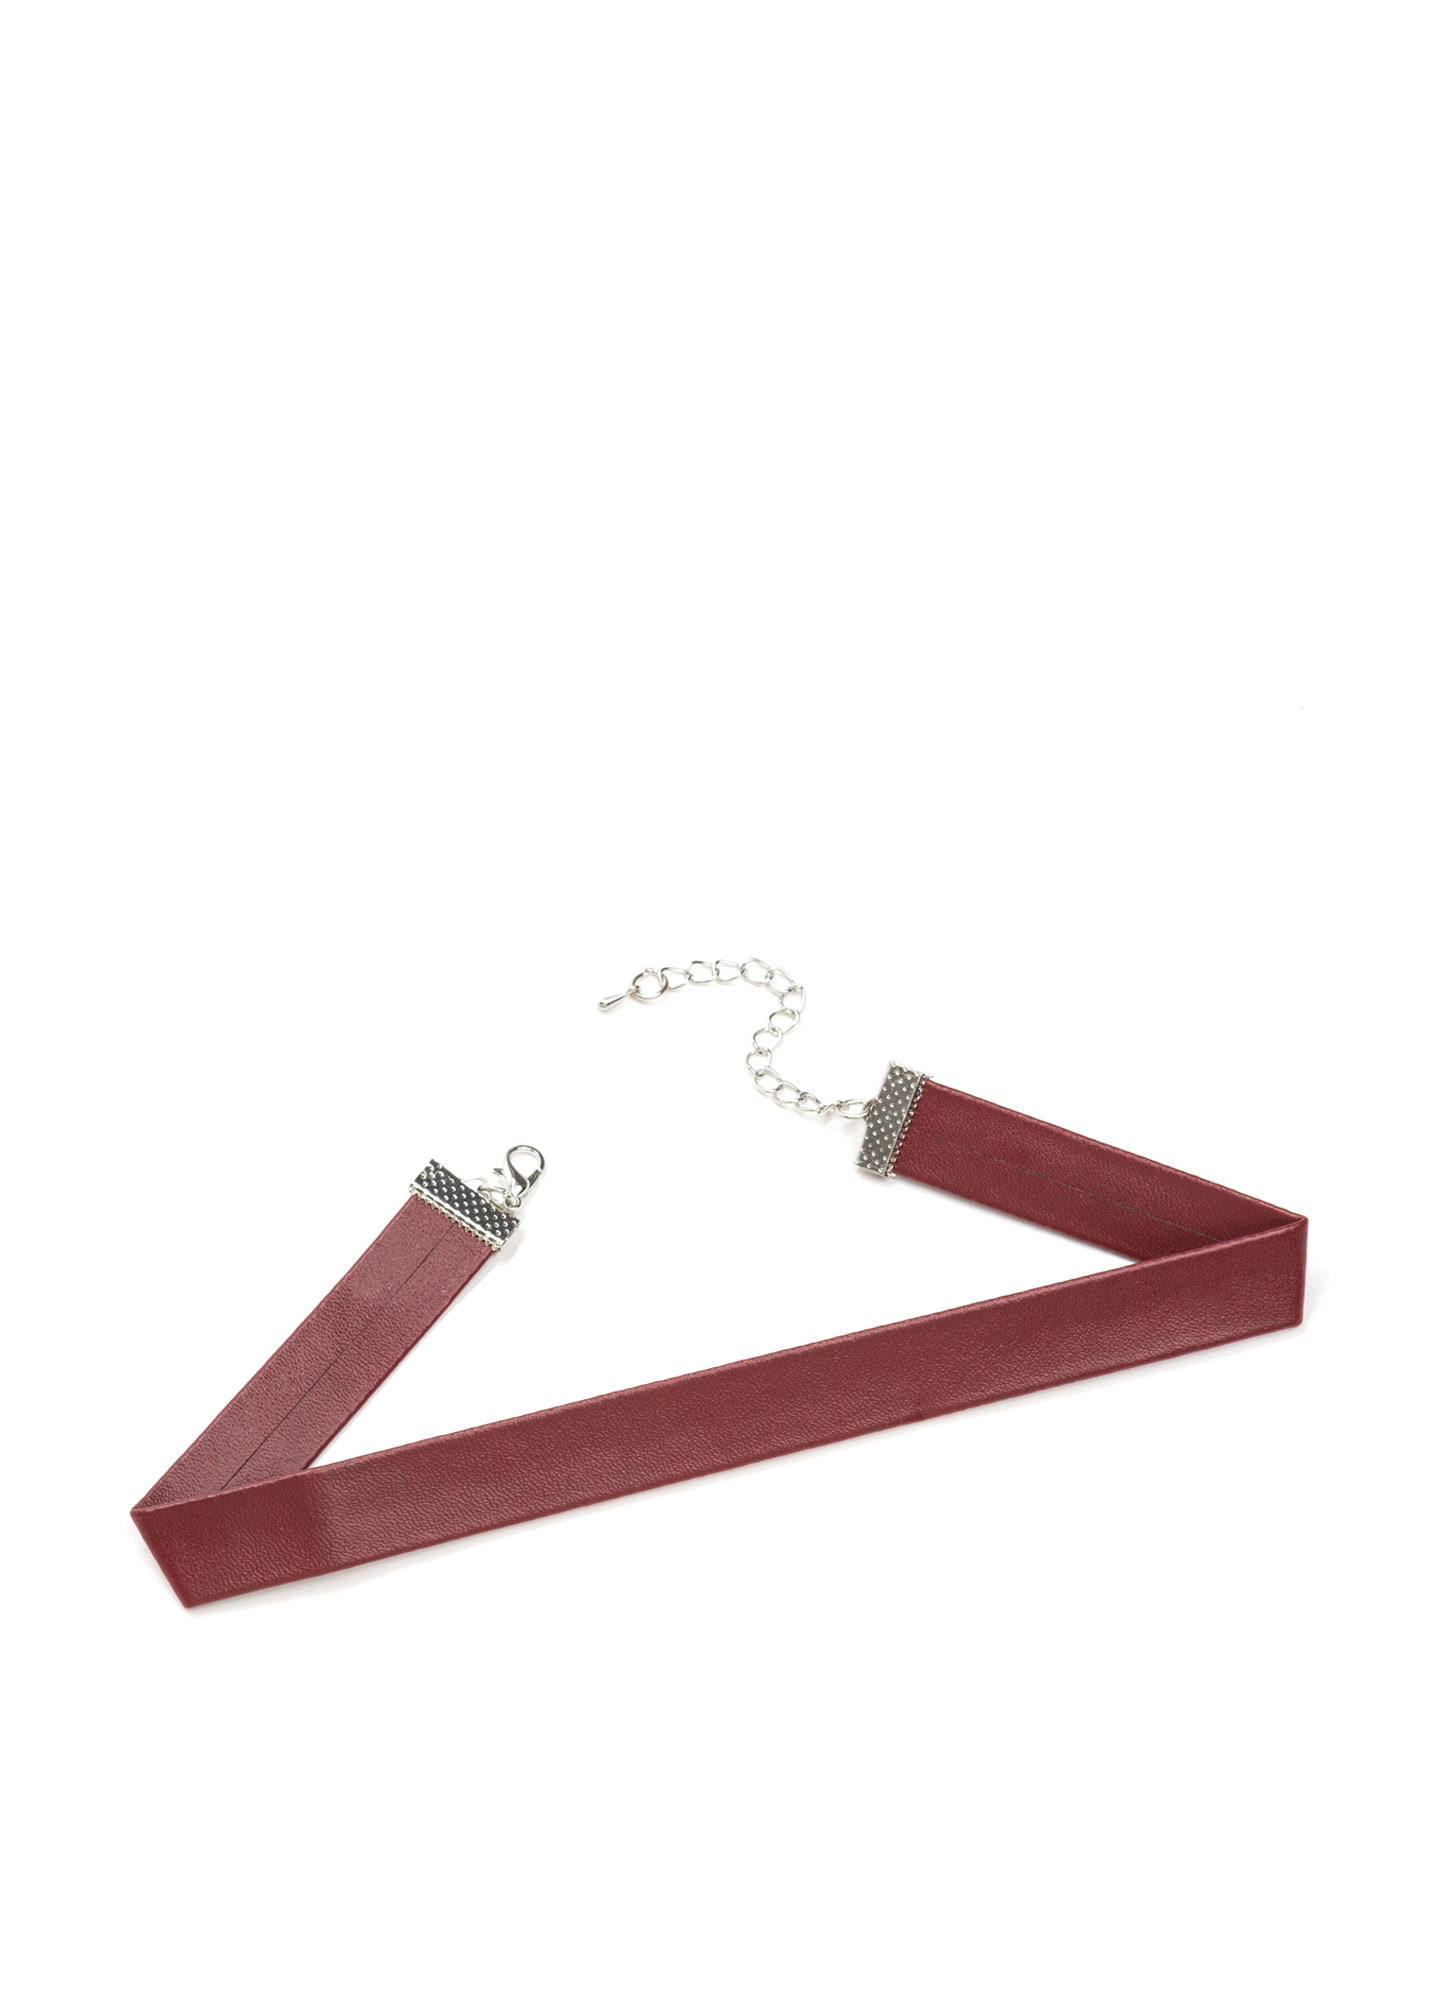 Simply 90s Chic Faux Leather Choker BURGUNDY